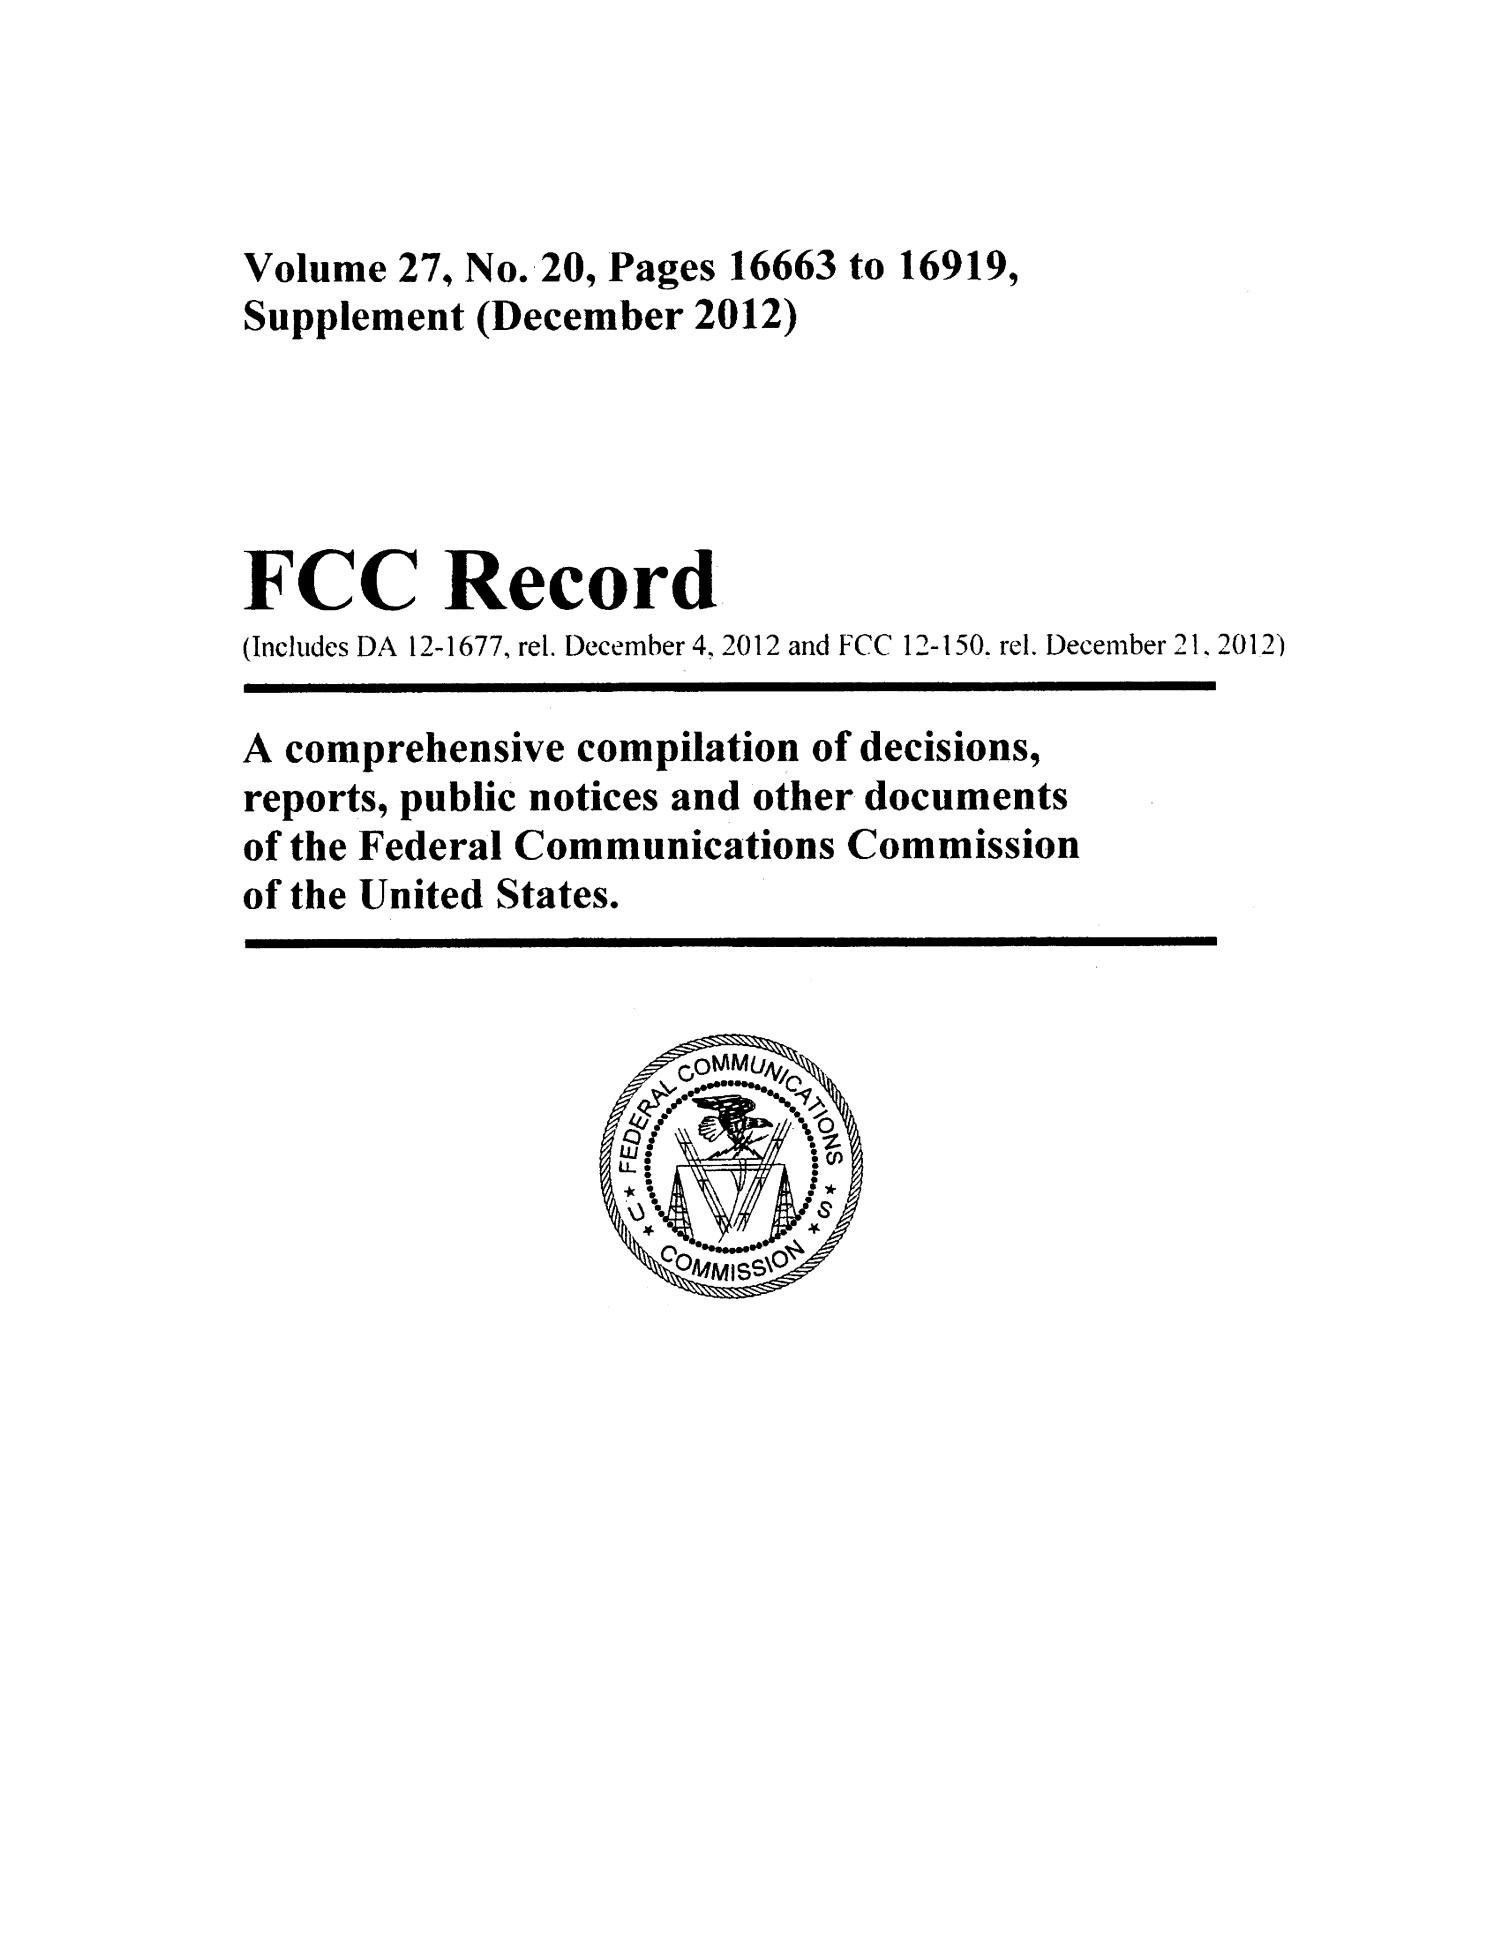 FCC Record, Volume 27, No. 20, Pages 16663 to 16919, Supplement (December 2012)                                                                                                      Front Cover